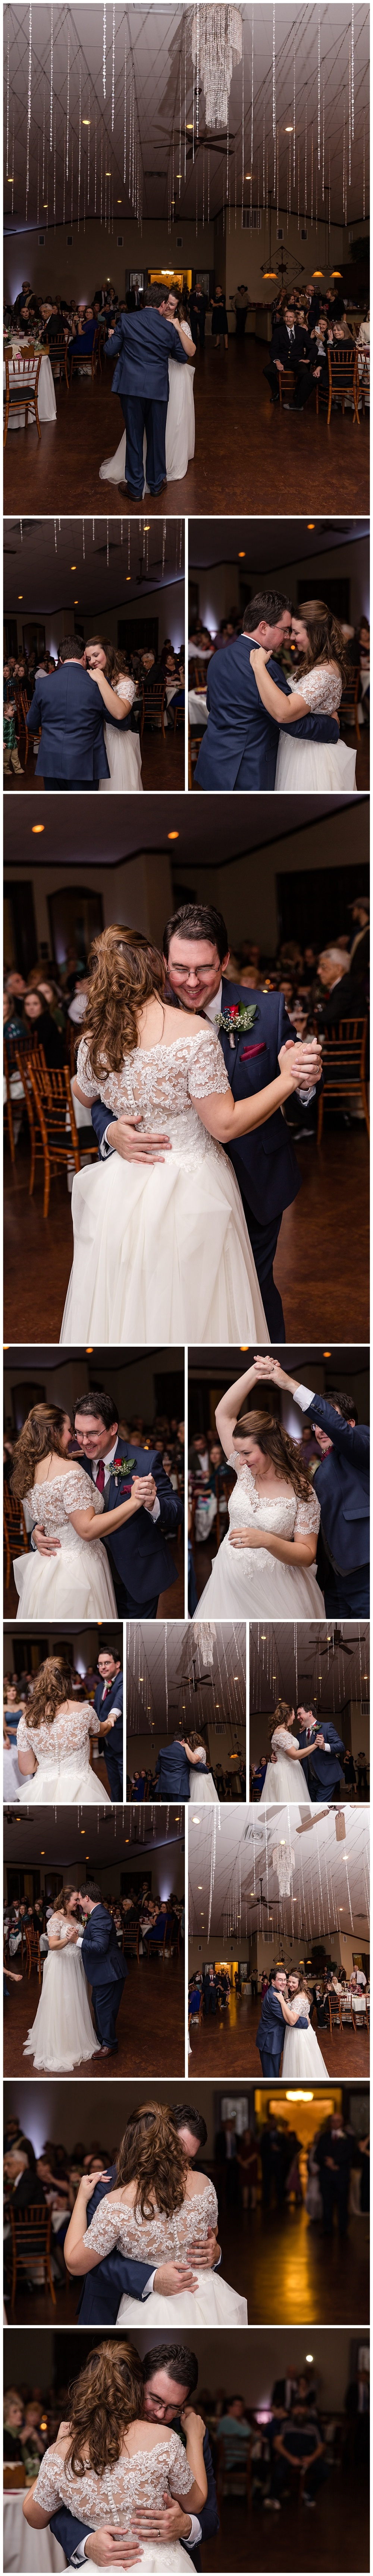 Wedding-Photographer-The-Legacy-Jacksonville-Texas-Arron-Krystal-Carly-Barton-Photography_0053.jpg